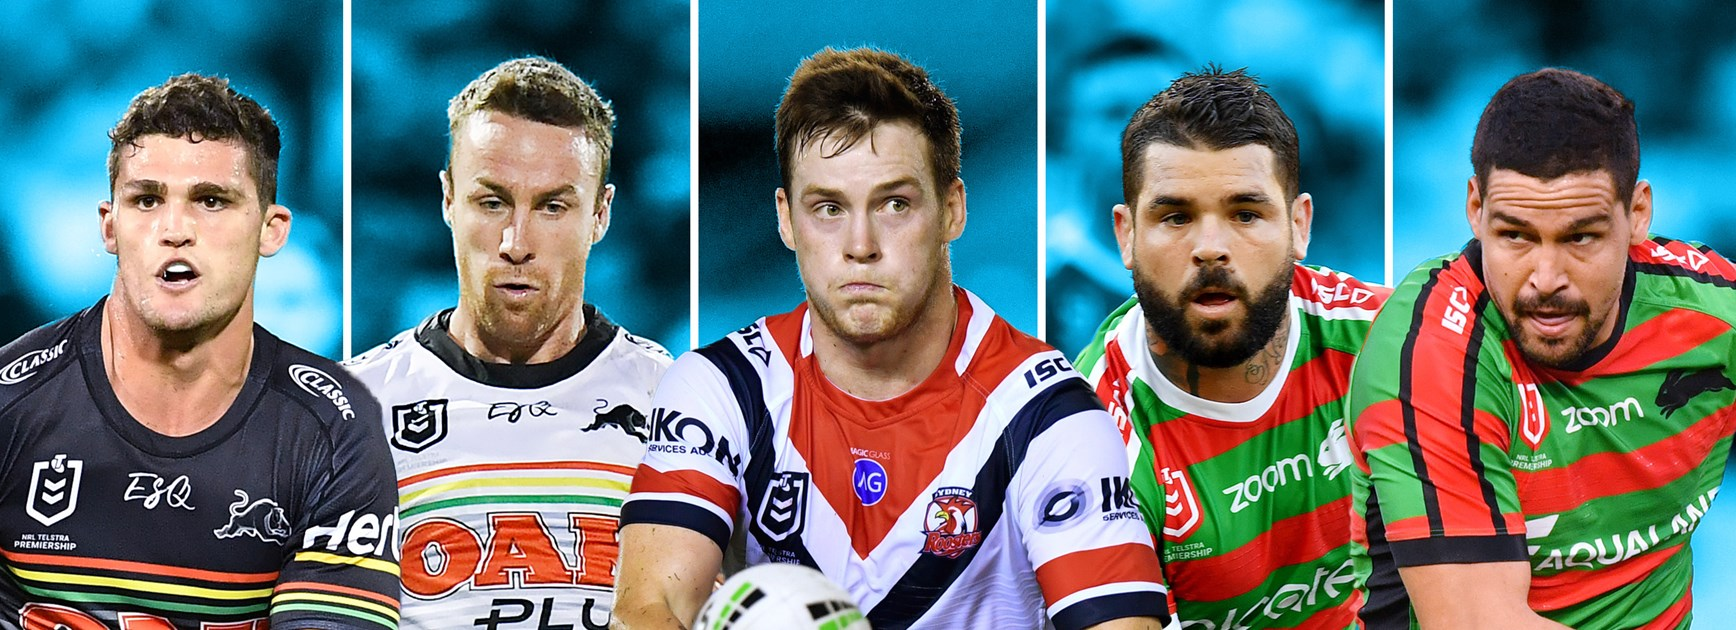 NSW Blues halves: NRL.com experts have their say